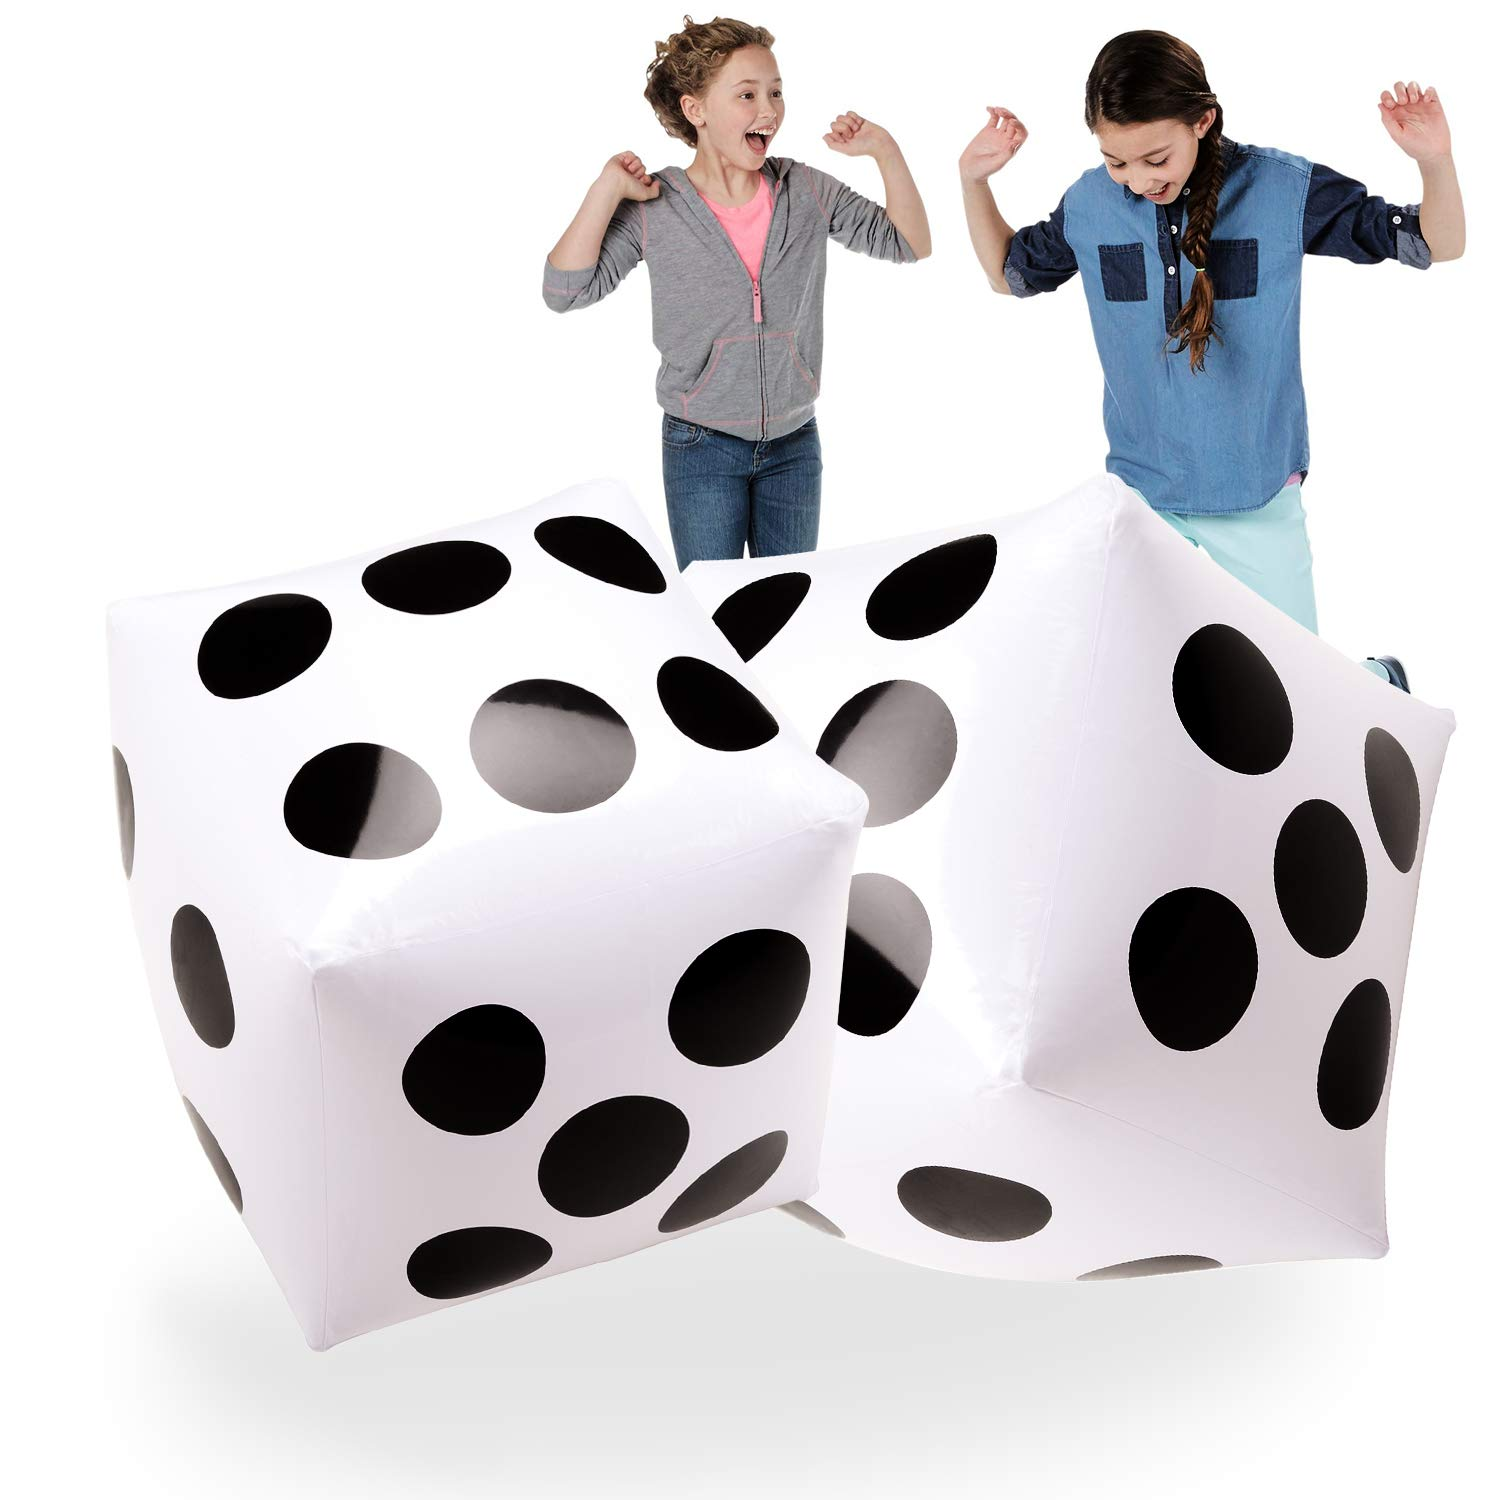 Novelty Place 20'' Jumbo Inflatable Dice 2 PCS, 20 Inch White and Black Giant Dice for Indoor and Outdoor Broad Game, Ludo and Pool Party by Novelty Place